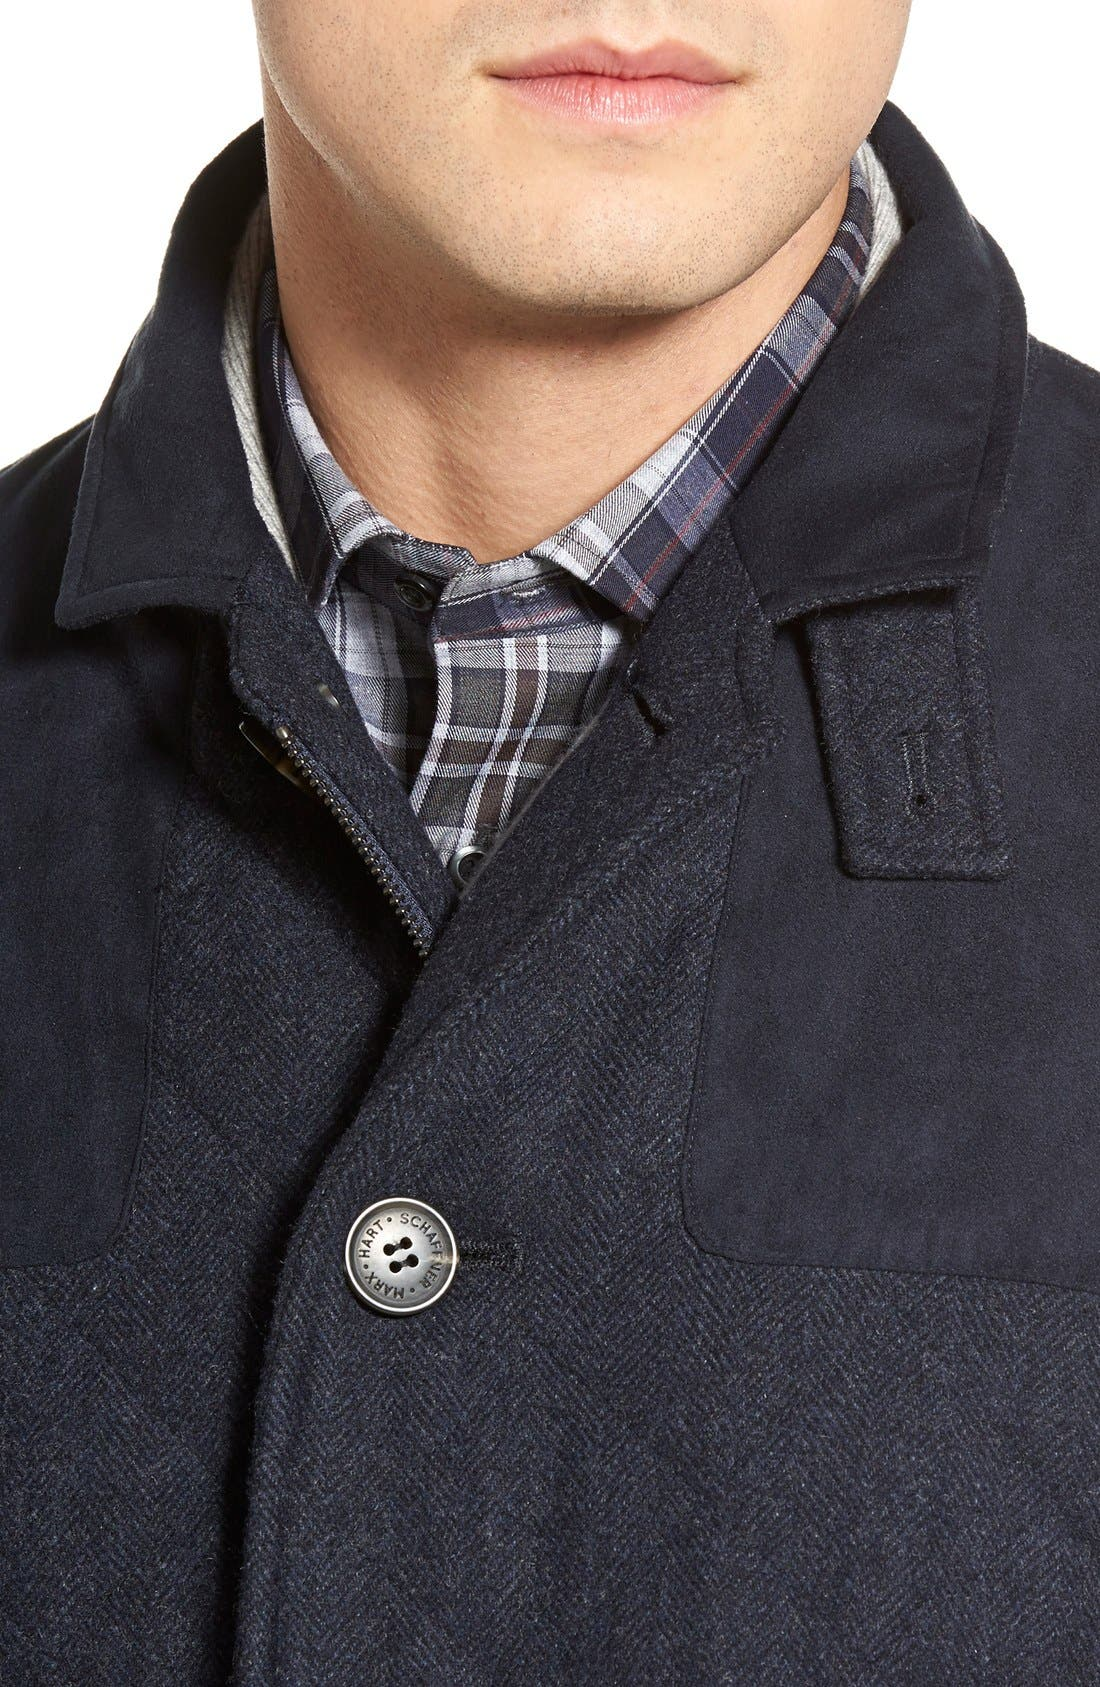 'Shooter' Wool Blend Quilted Jacket,                             Alternate thumbnail 12, color,